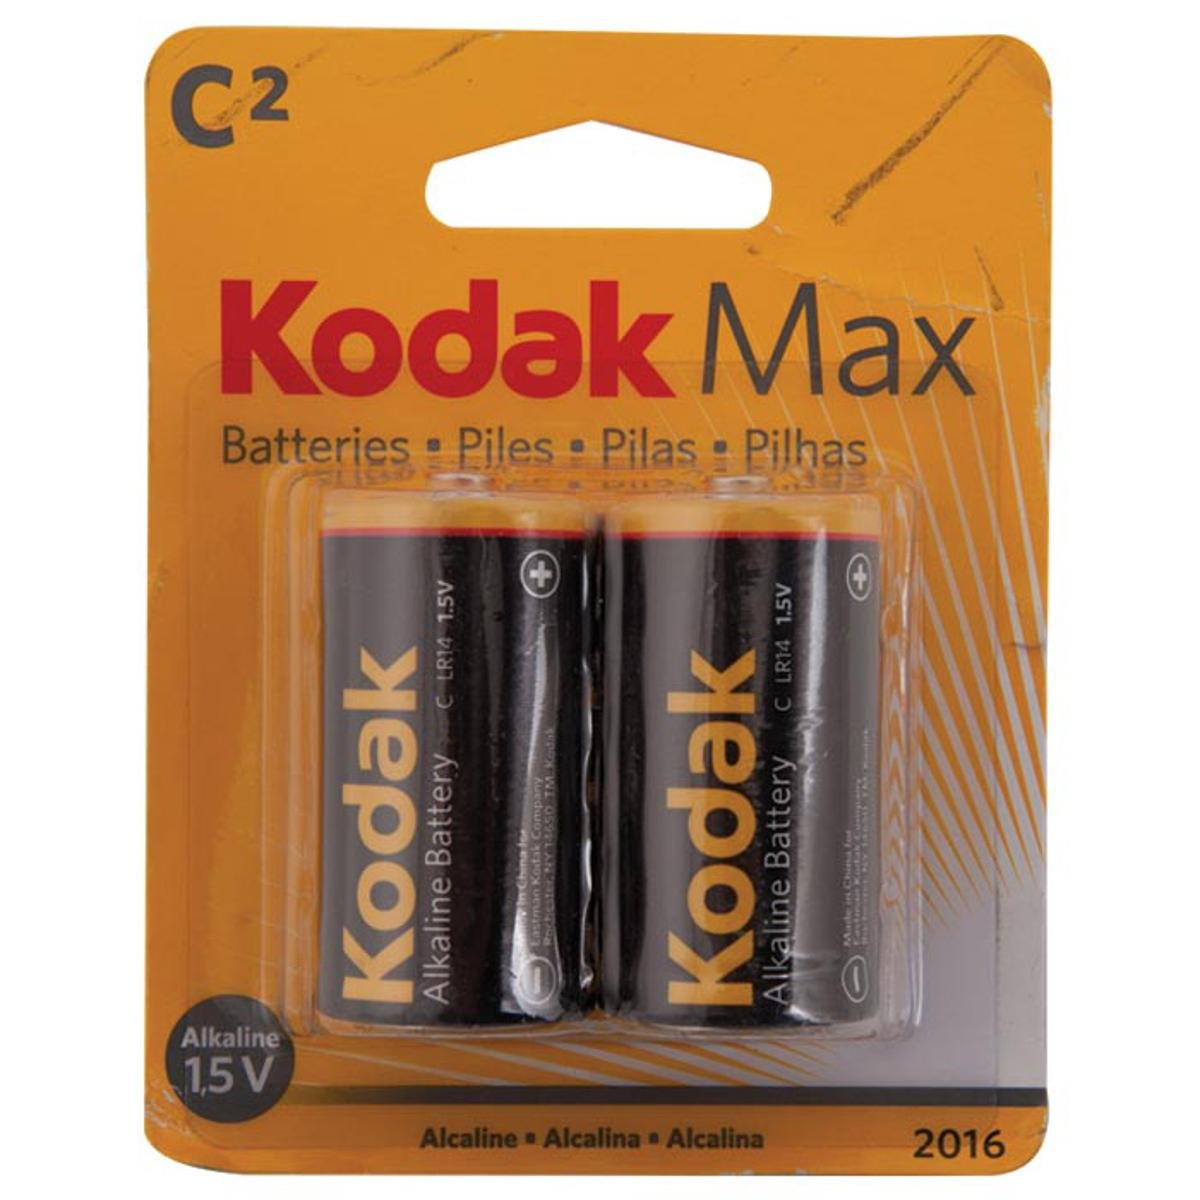 Kodak Xtralife Alkaline C Batteries 2 Pack Camera Arta Cutaway Diagram Show A Typical Cell Or Battery With Photo